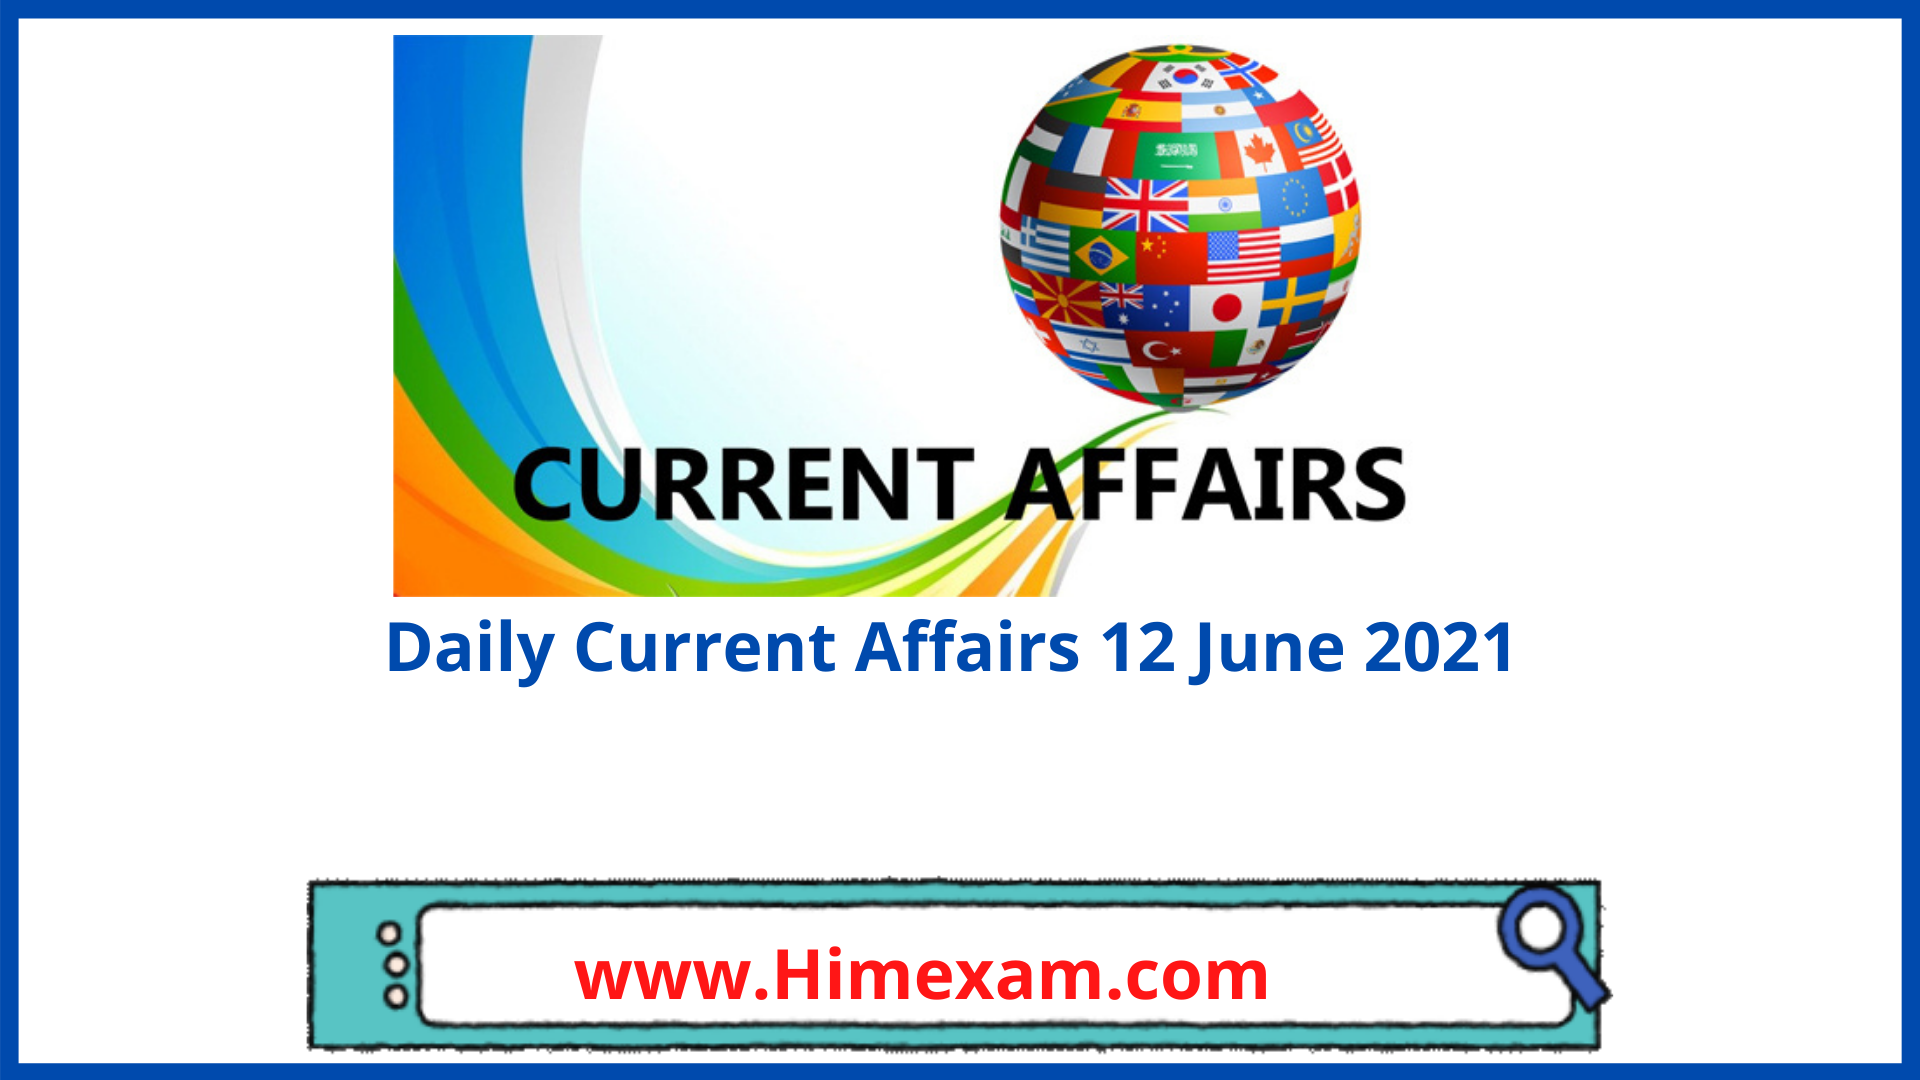 Daily Current Affairs 12 June 2021 In Hindi